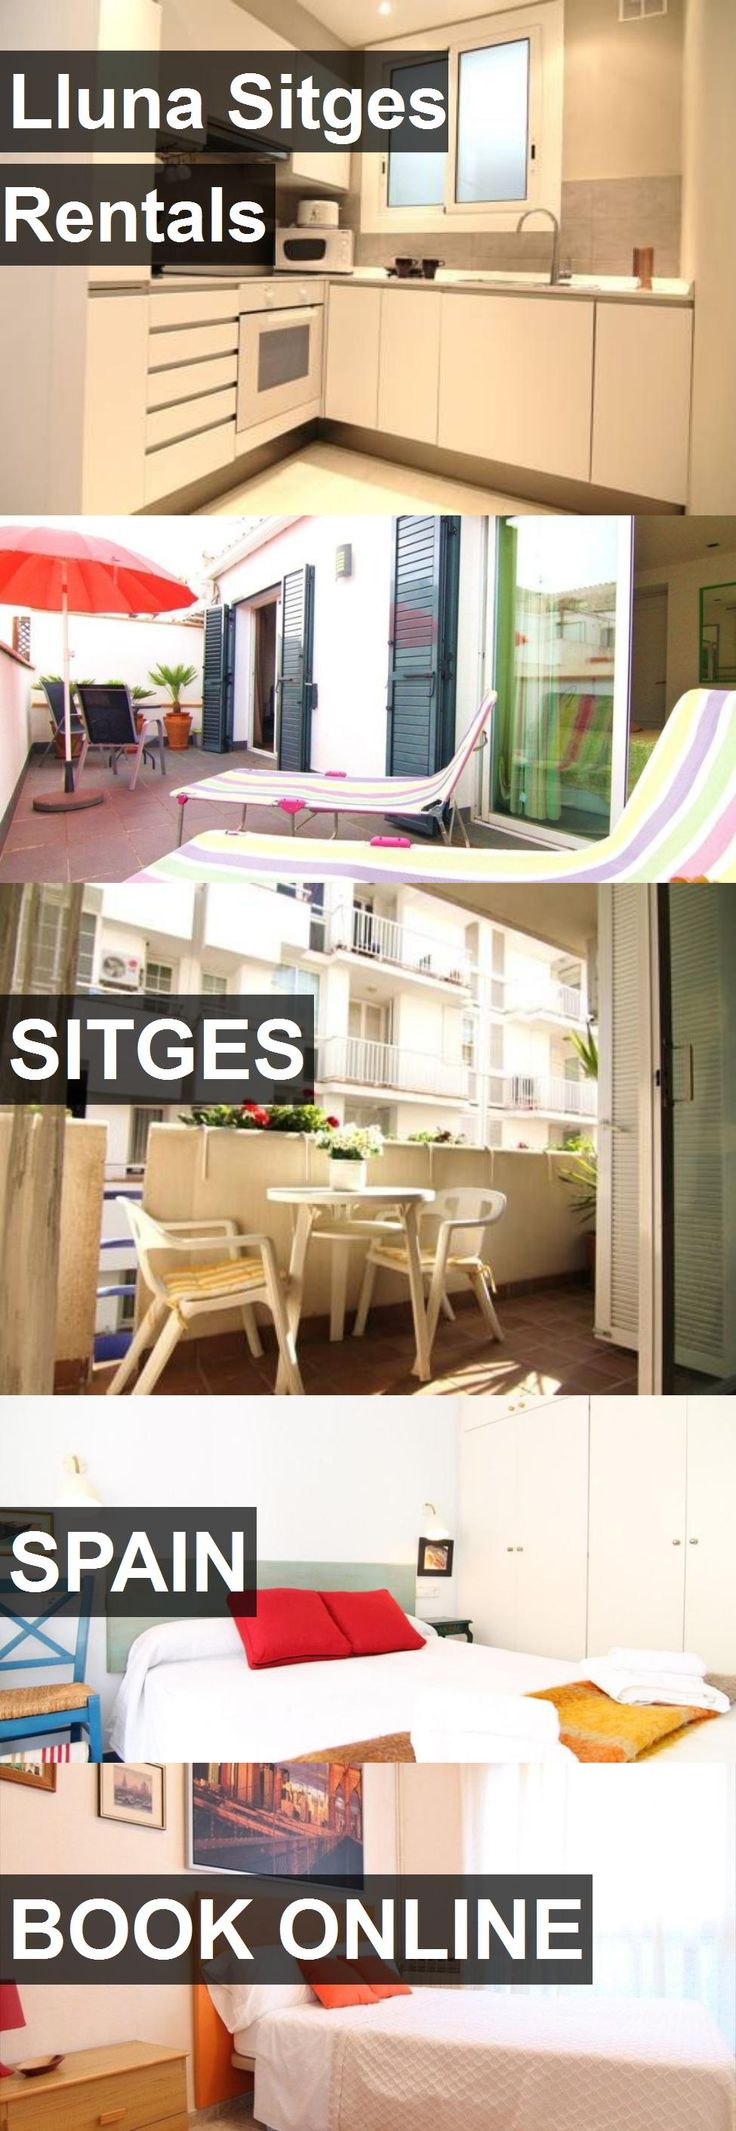 Hotel Lluna Sitges Rentals in Sitges, Spain. For more information, photos, reviews and best prices please follow the link. #Spain #Sitges #hotel #travel #vacation